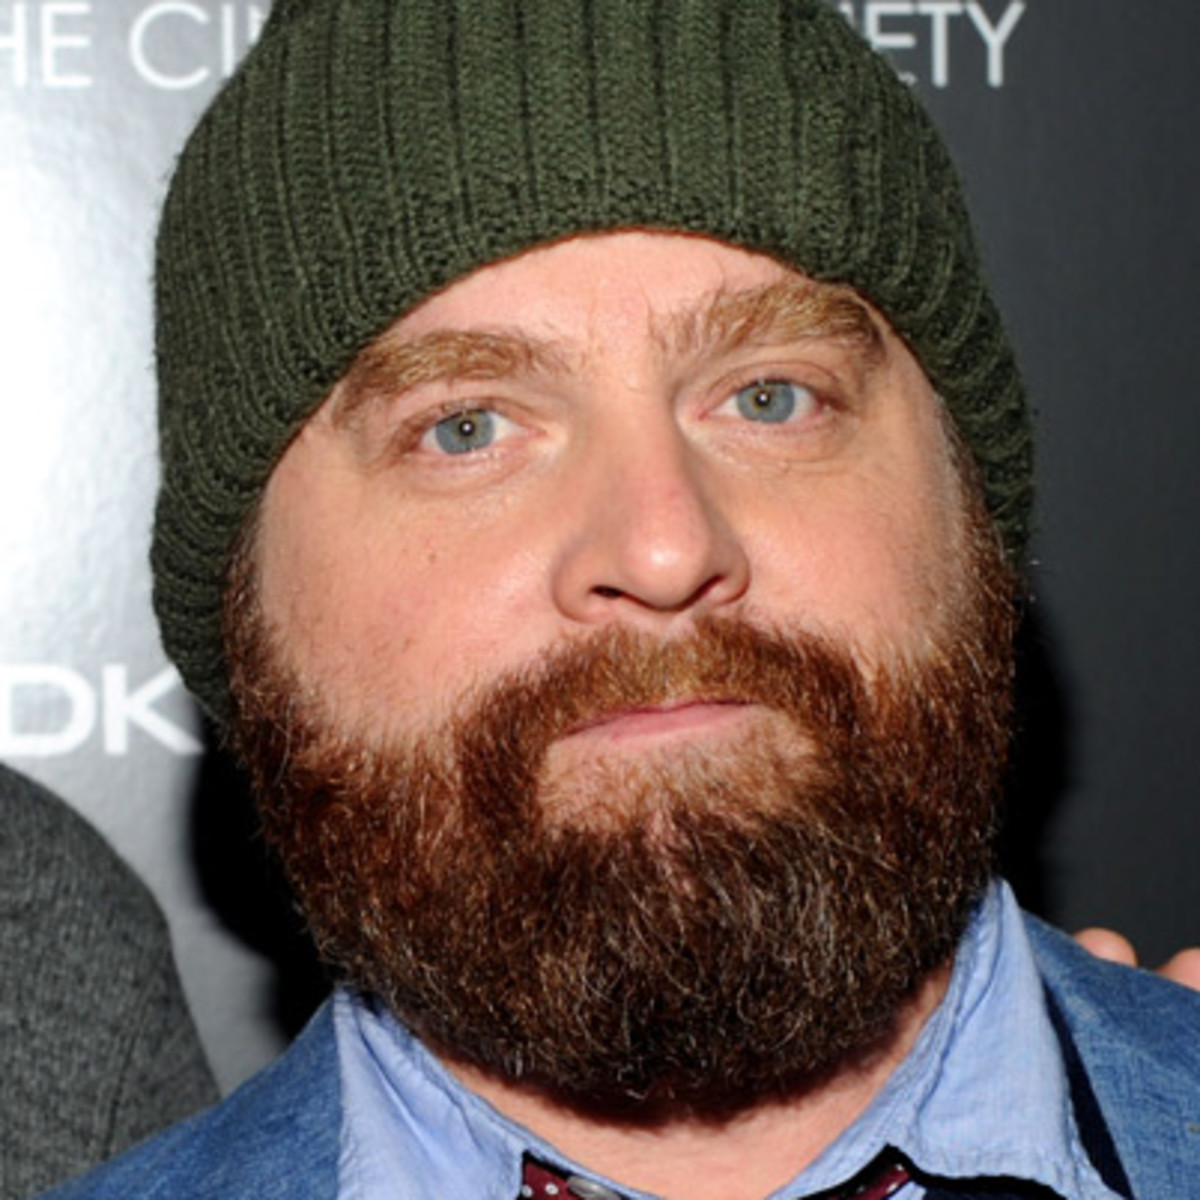 zach galifianakis filmezach galifianakis movies, zach galifianakis фильмы, zach galifianakis 2016, zach galifianakis laugh, zach galifianakis wife, zach galifianakis gif, zach galifianakis height, zach galifianakis math, zach galifianakis 2017, zach galifianakis похудел, zach galifianakis meme math, zach galifianakis films, zach galifianakis between two ferns, zach galifianakis filmleri, zach galifianakis joker, zach galifianakis twitter, zach galifianakis young, zach galifianakis laugh scene, zach galifianakis wiki, zach galifianakis filme